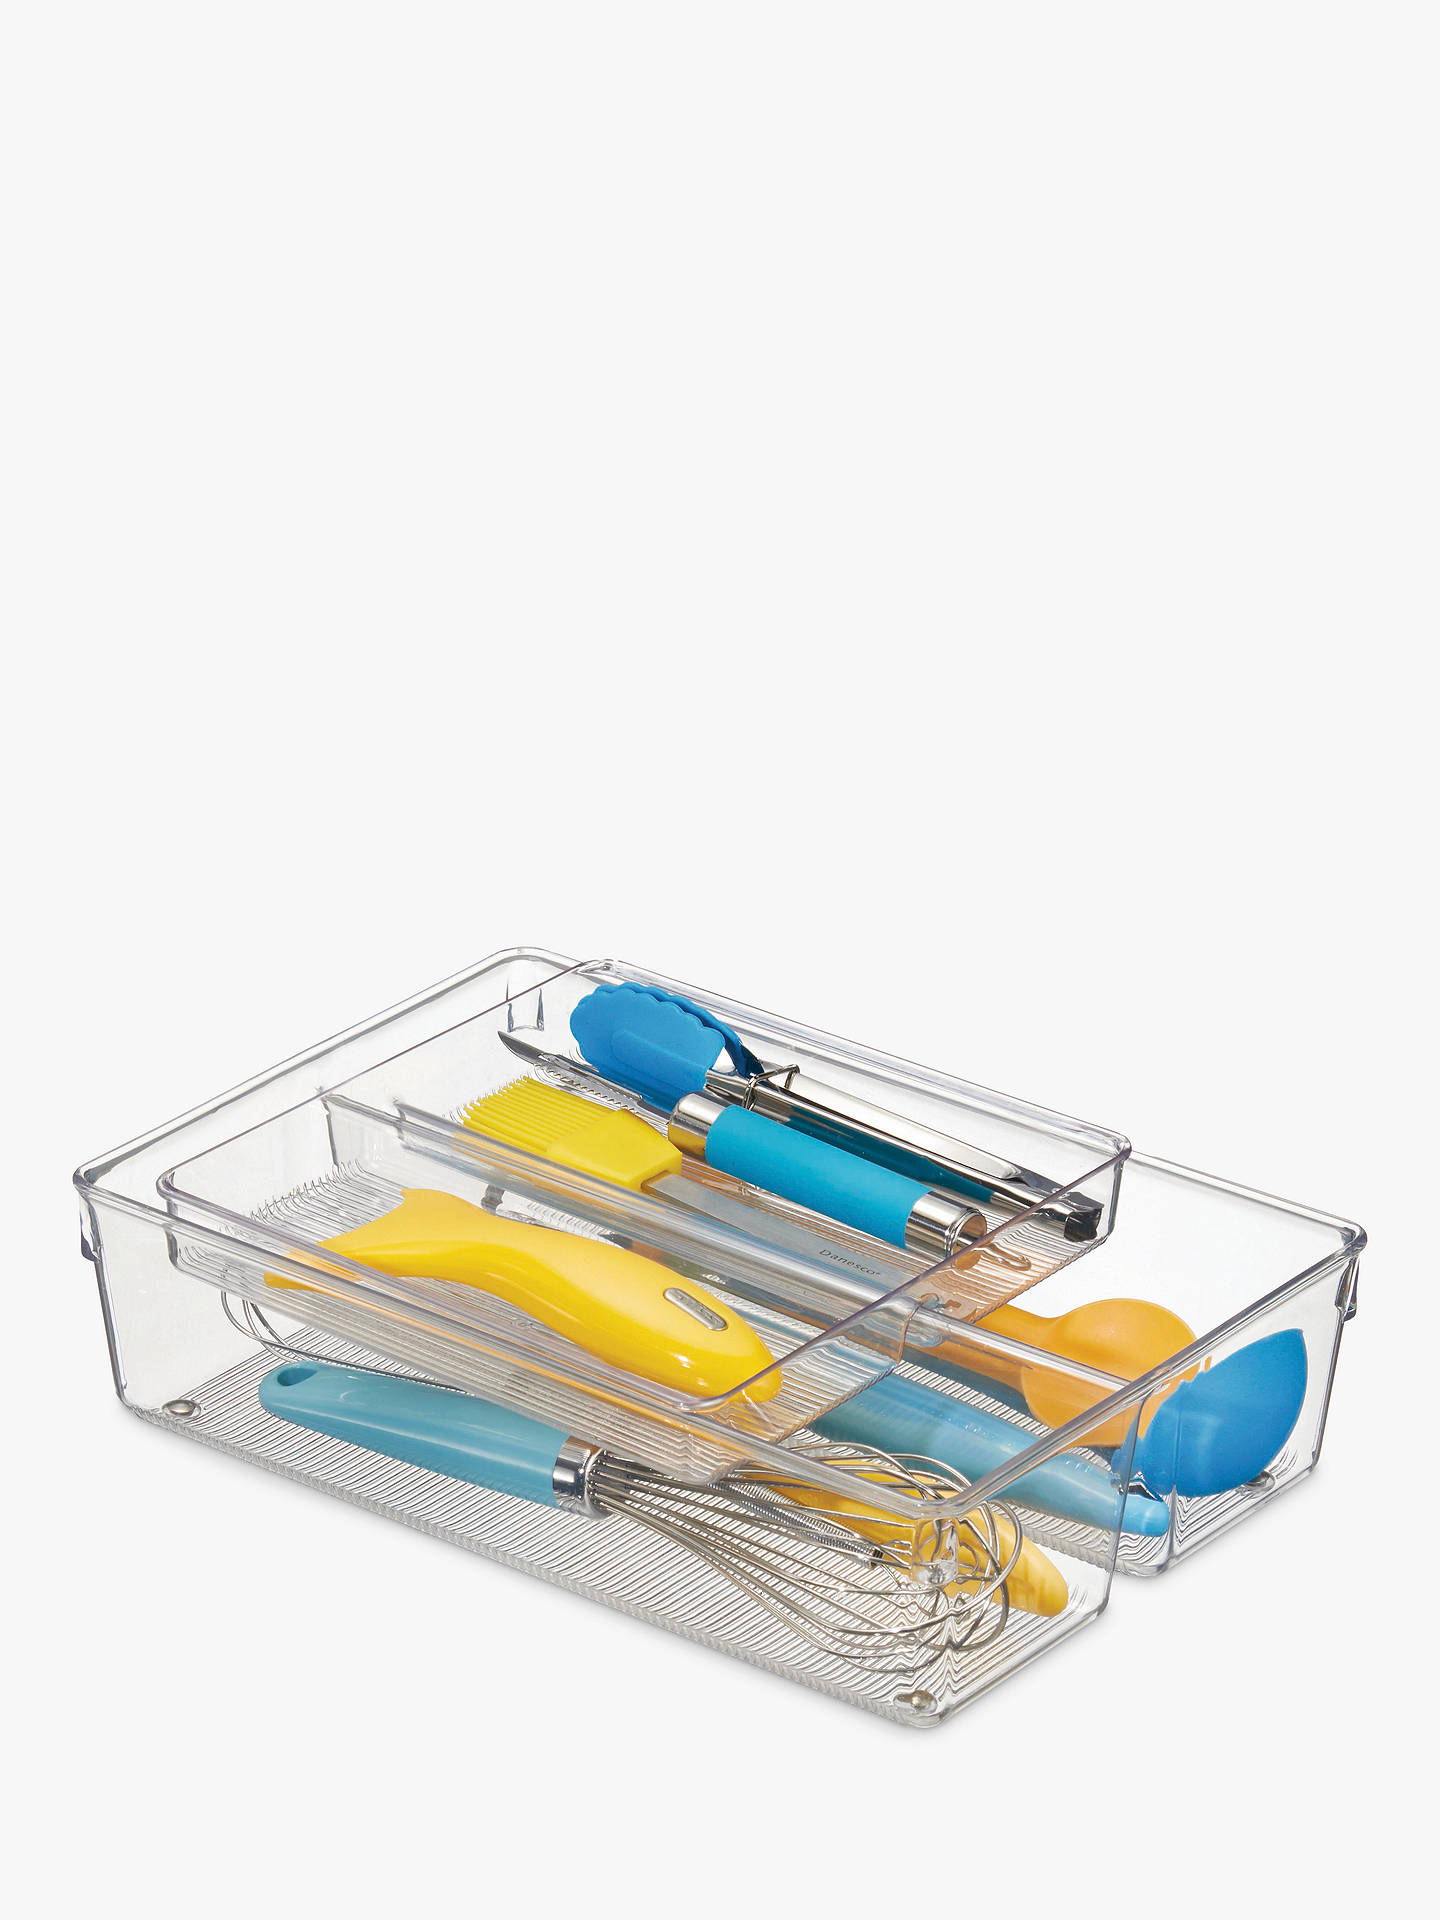 2 Sliding Trays With 2 Compartments Each Clear Cutlery Tray And